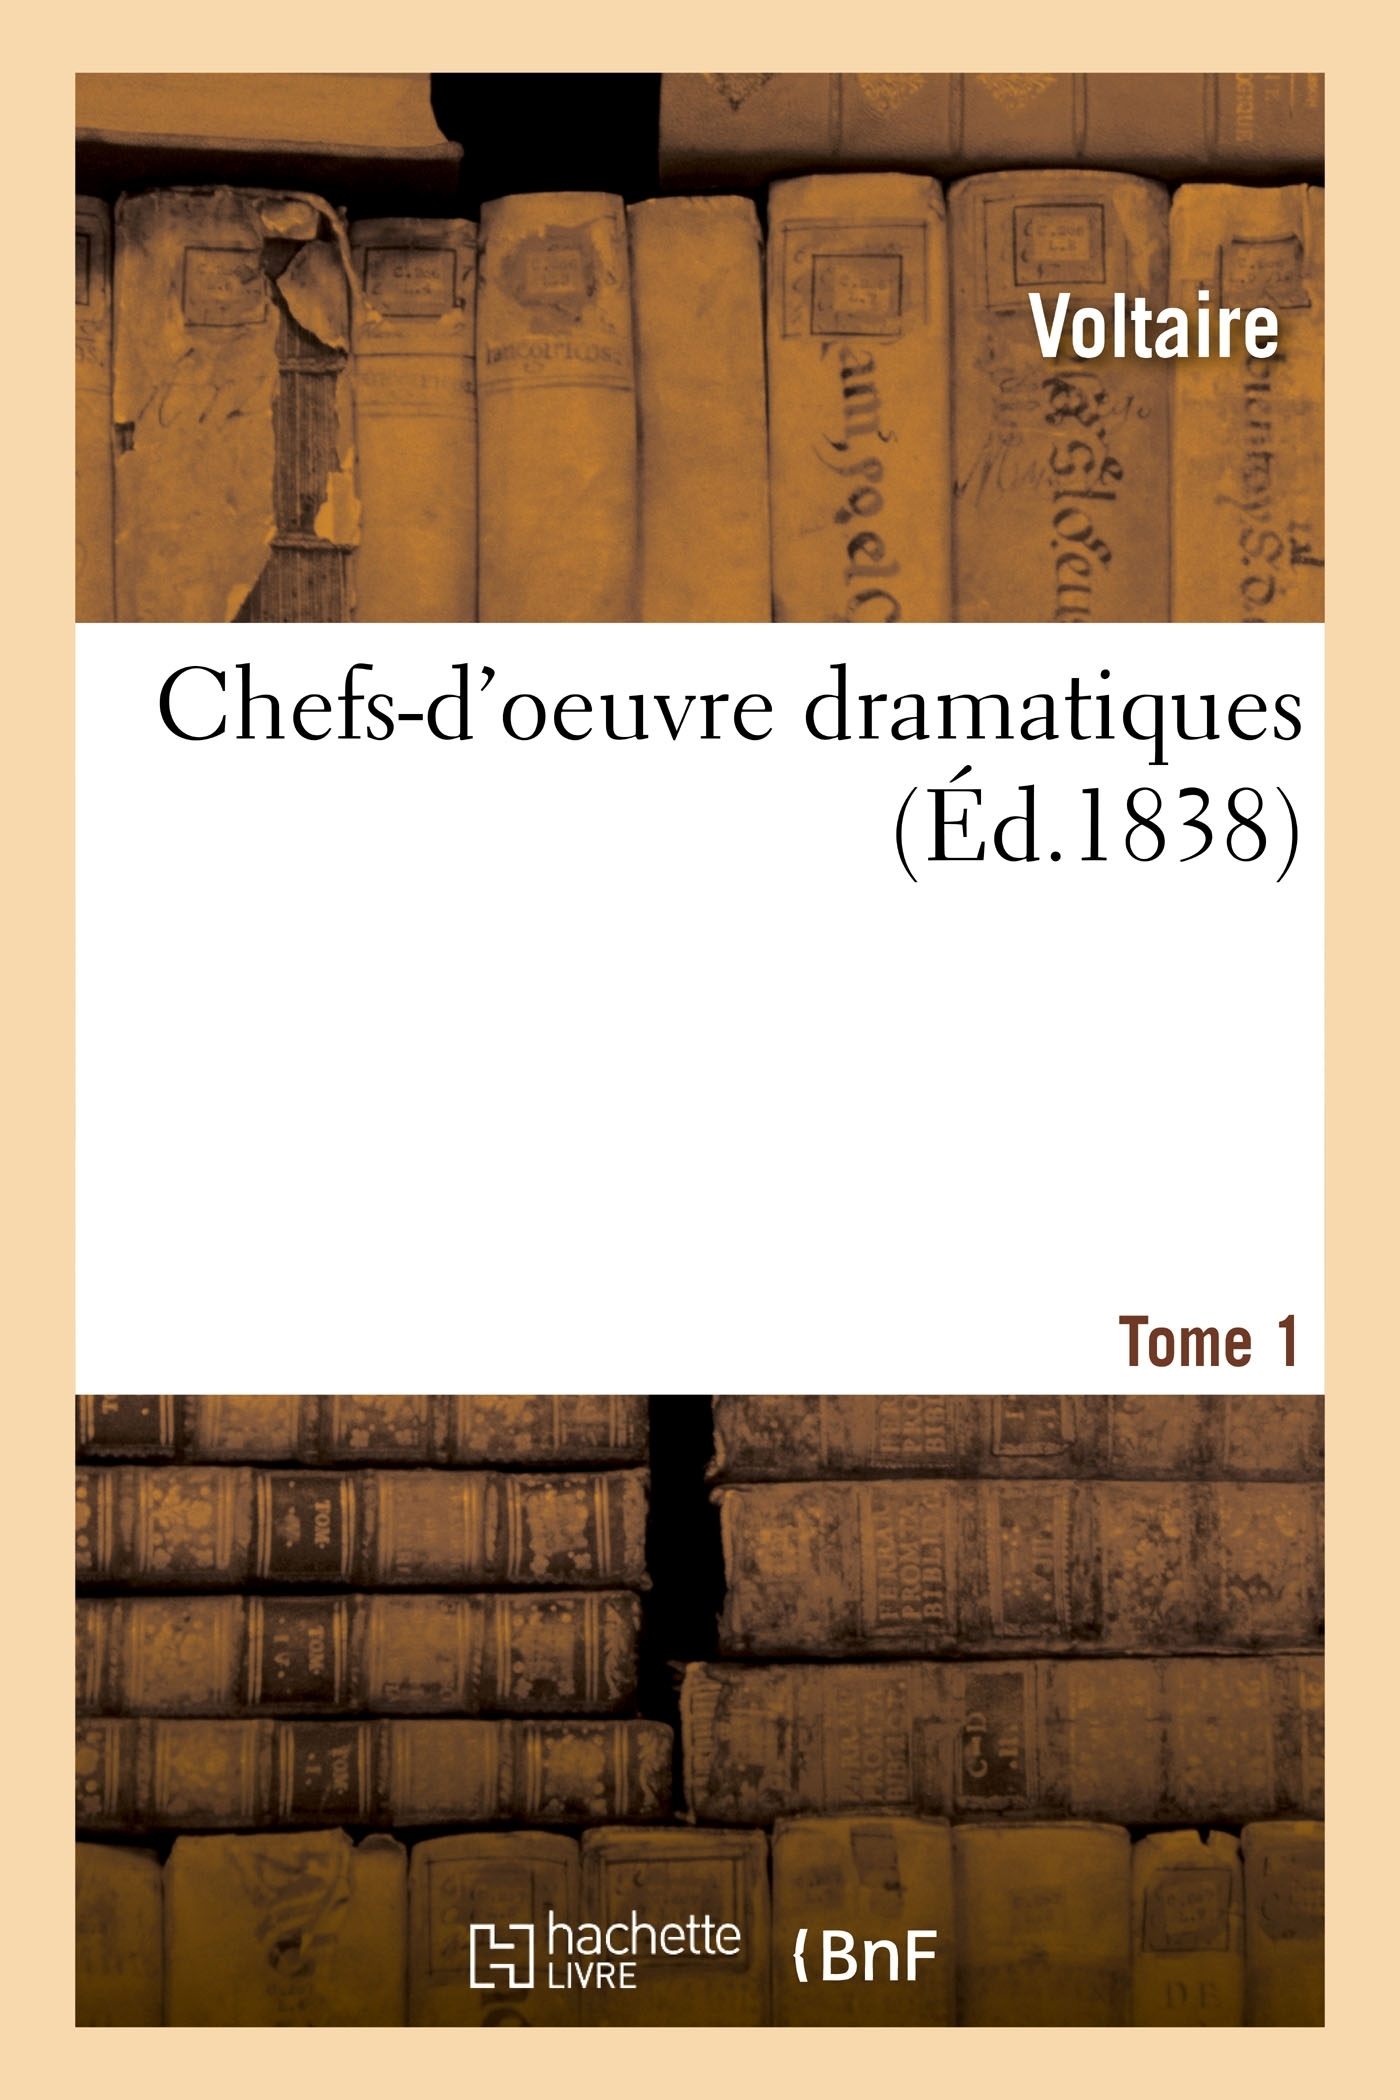 CHEFS-D'OEUVRE DRAMATIQUES. TOME 1